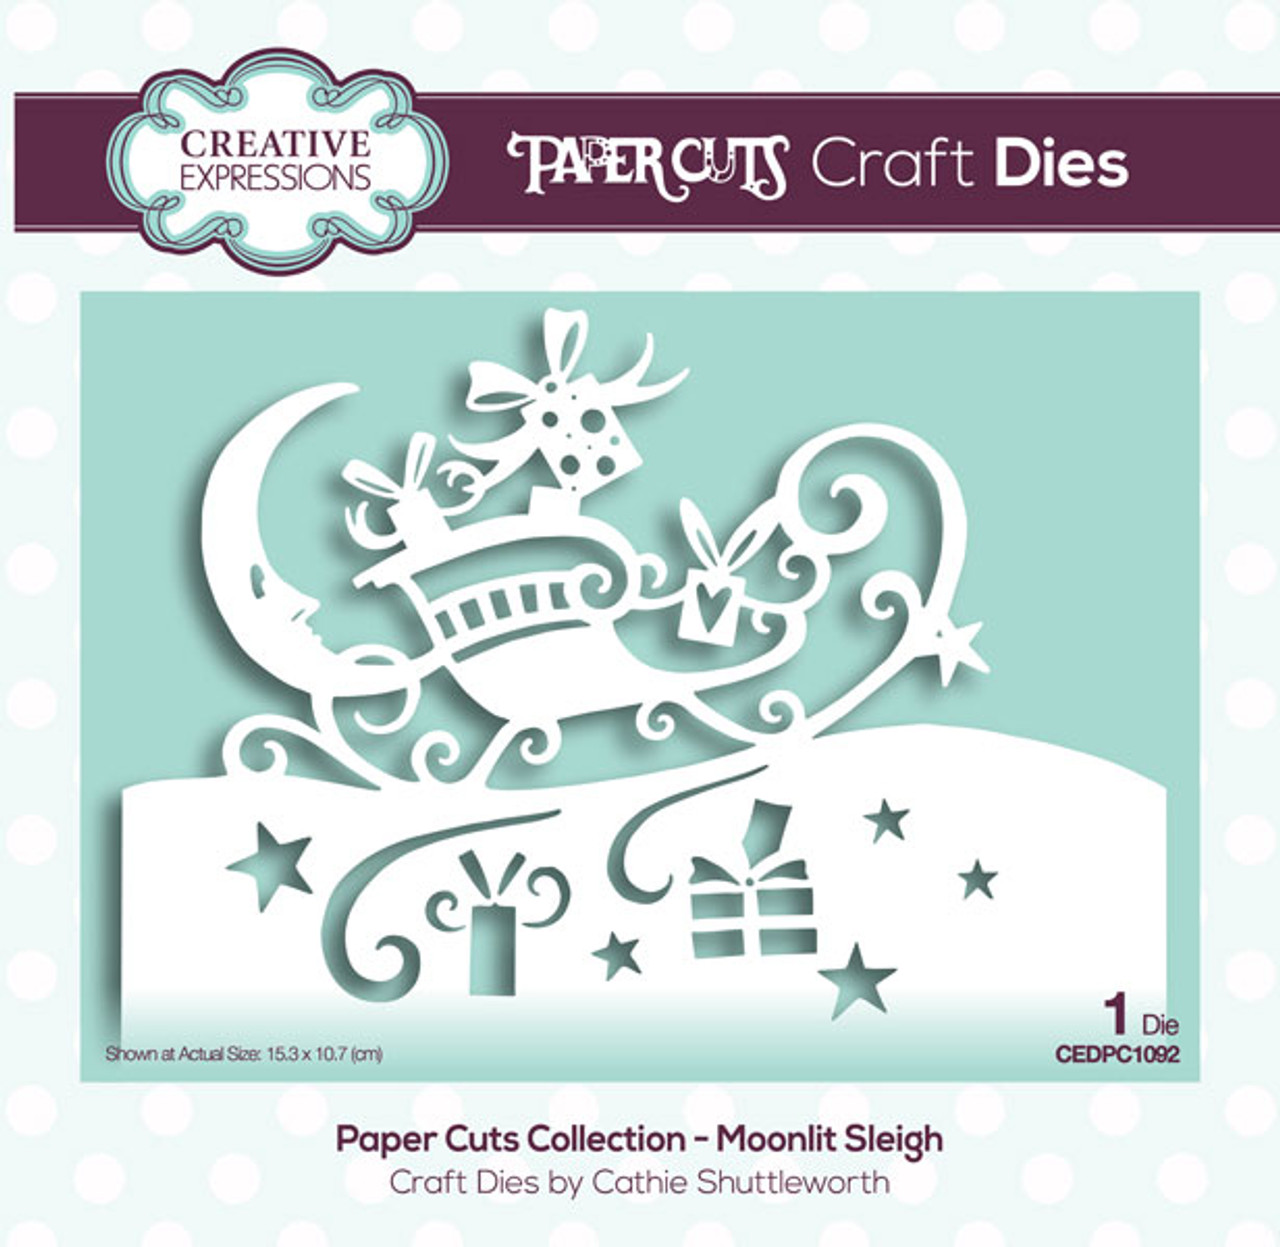 Creative Expressions Paper Cuts Collection Die - Moonlit Sleigh CEDPC1092